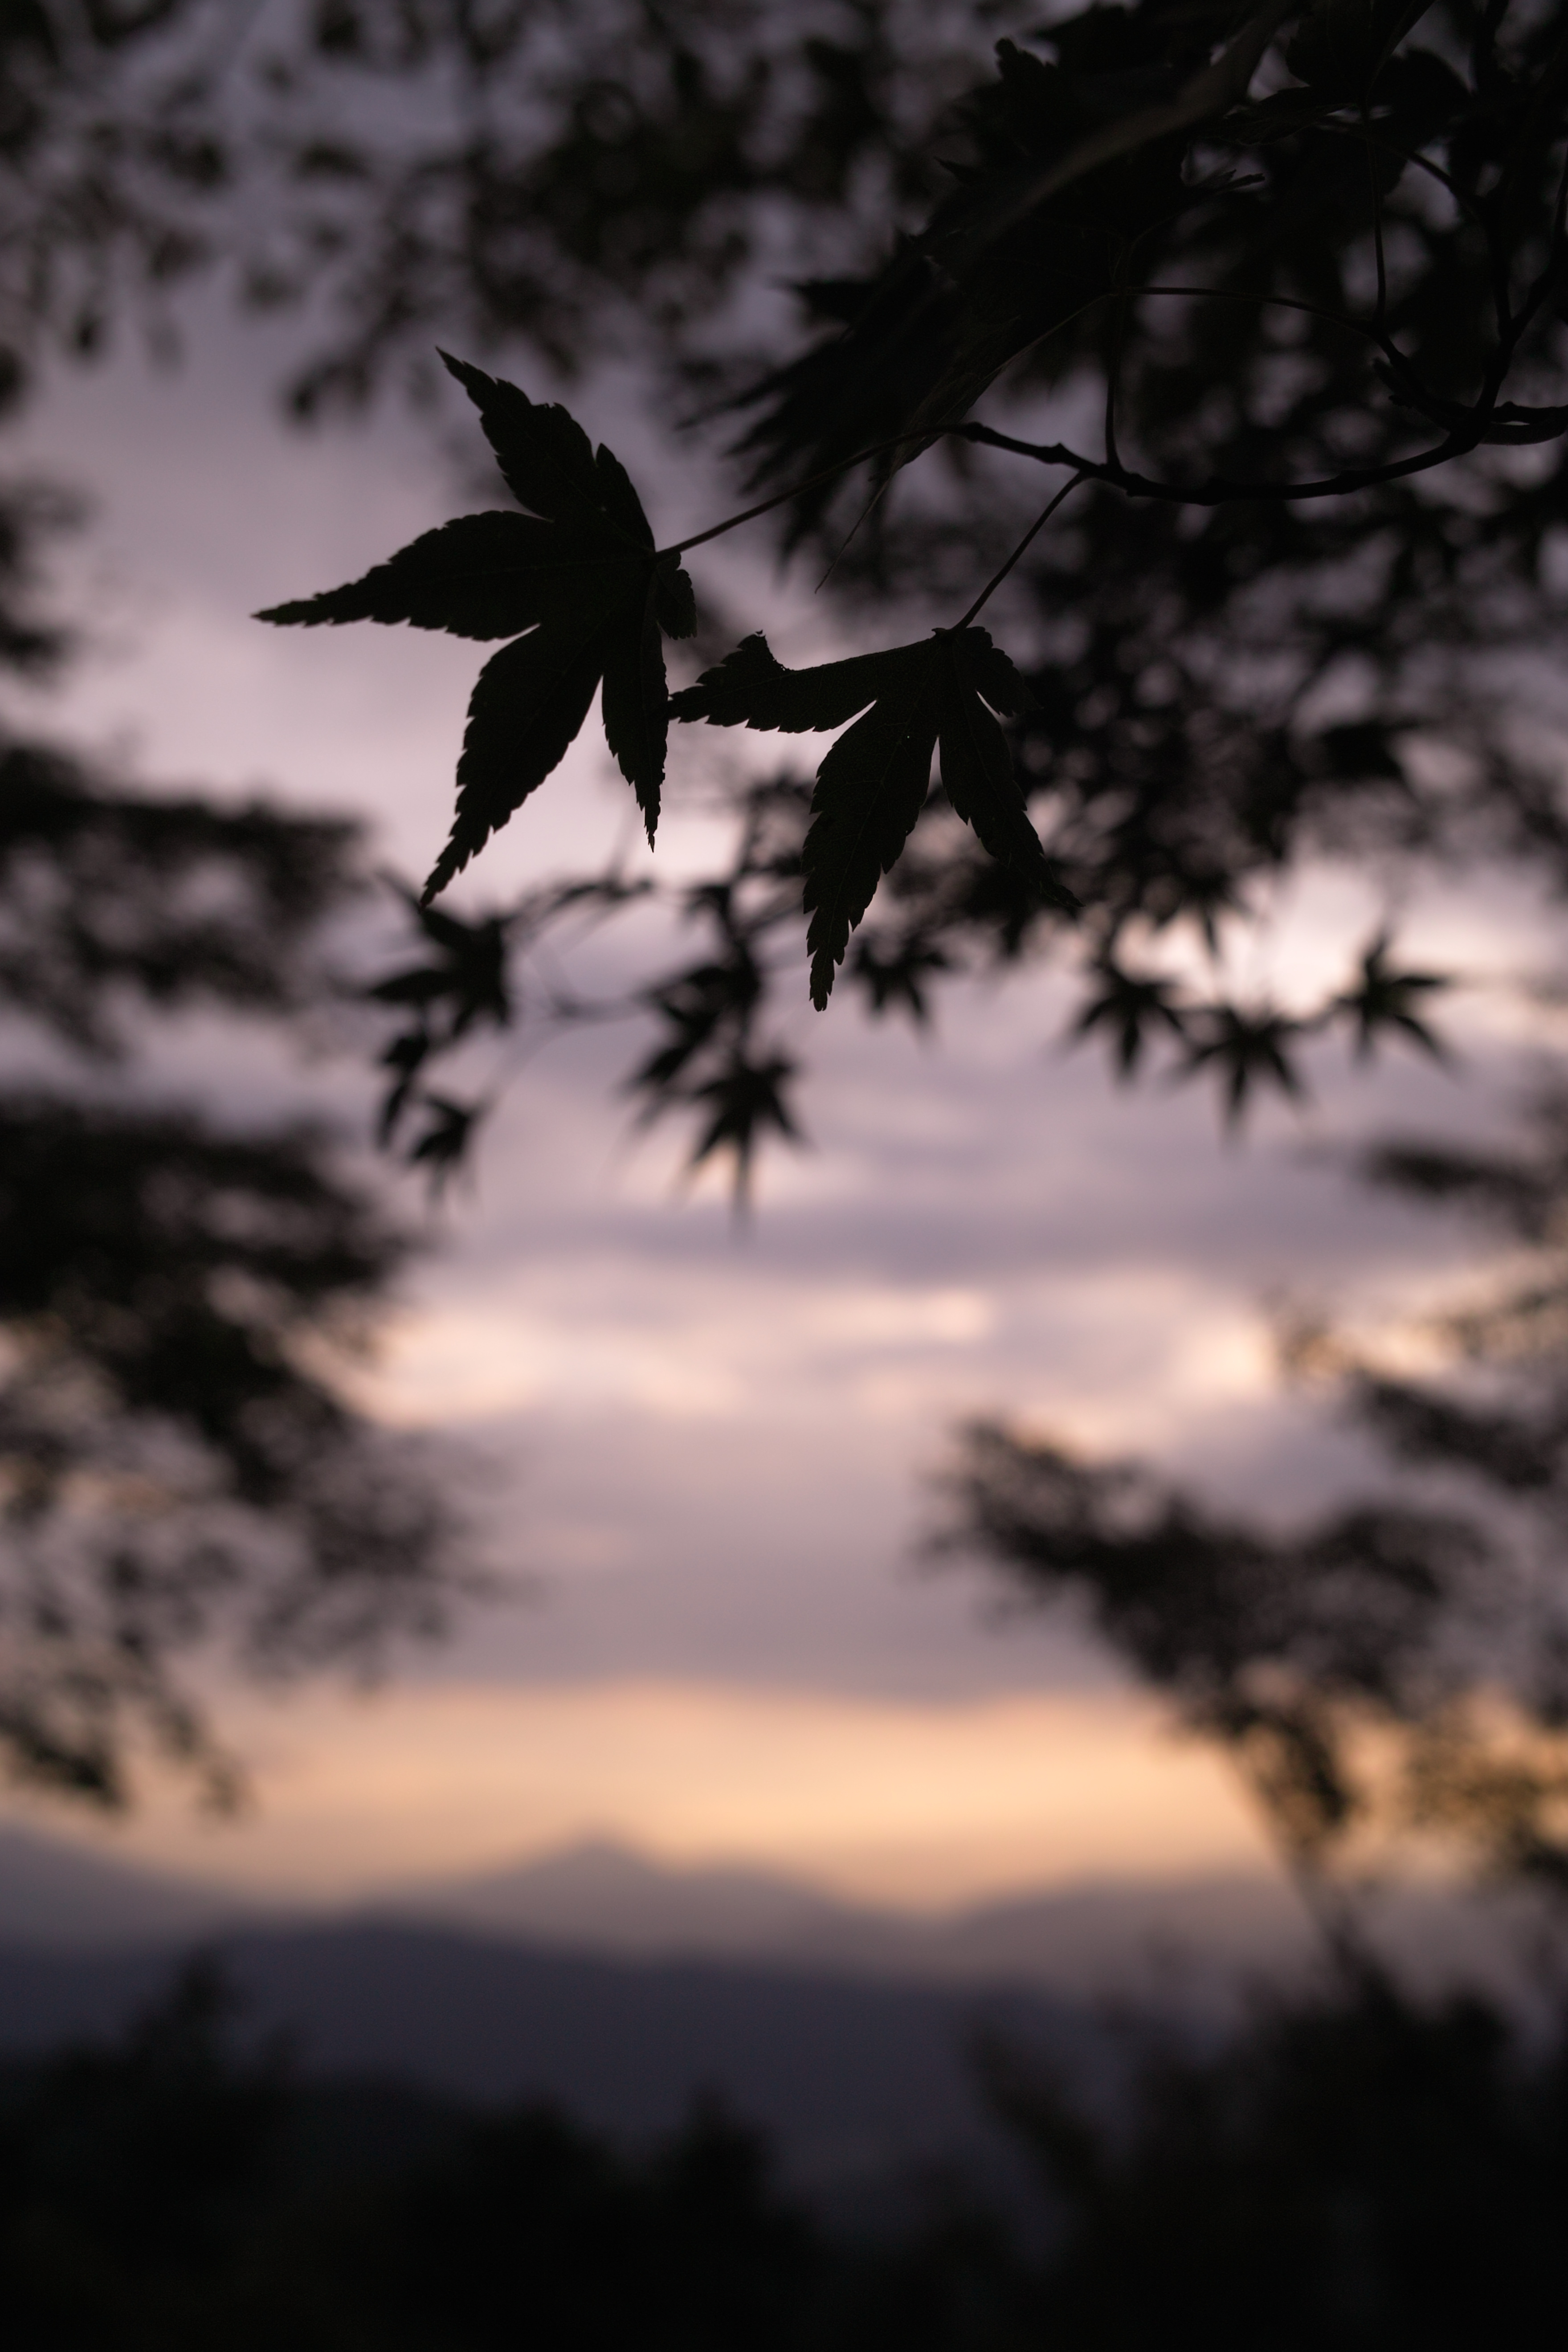 Silhouette Photography Leaf